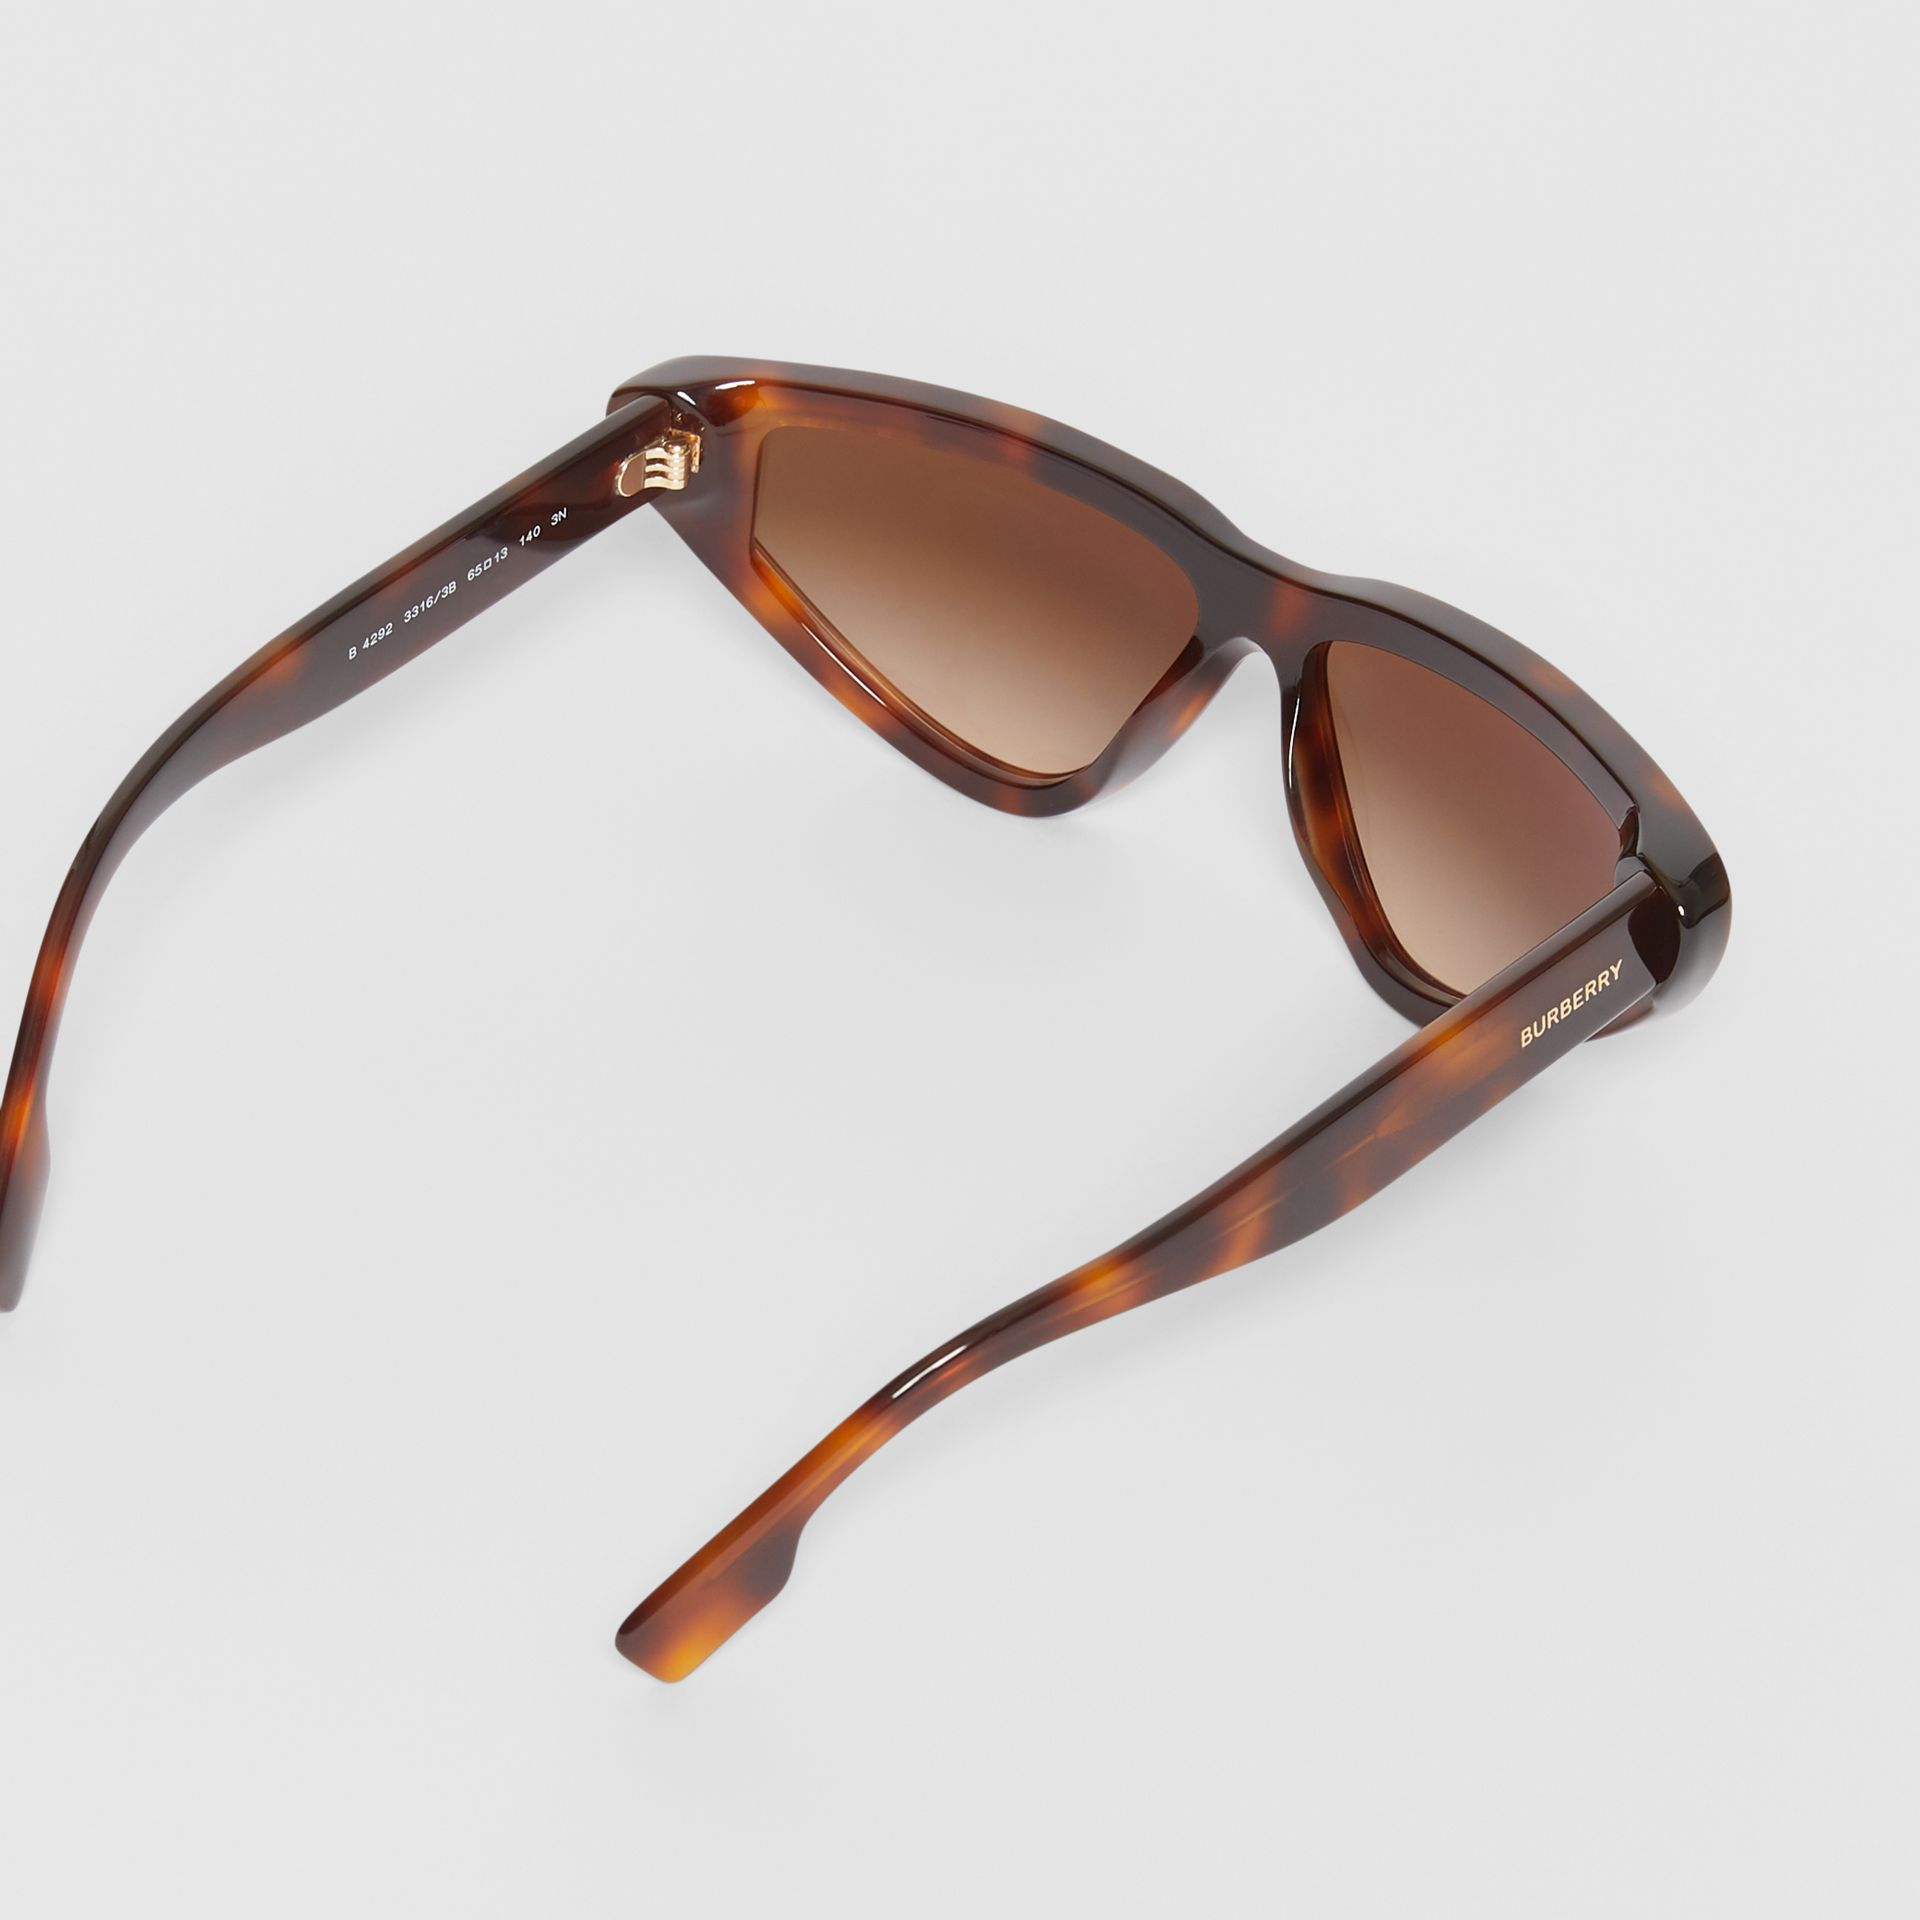 Triangular Frame Sunglasses in Tortoiseshell - Women | Burberry - gallery image 4